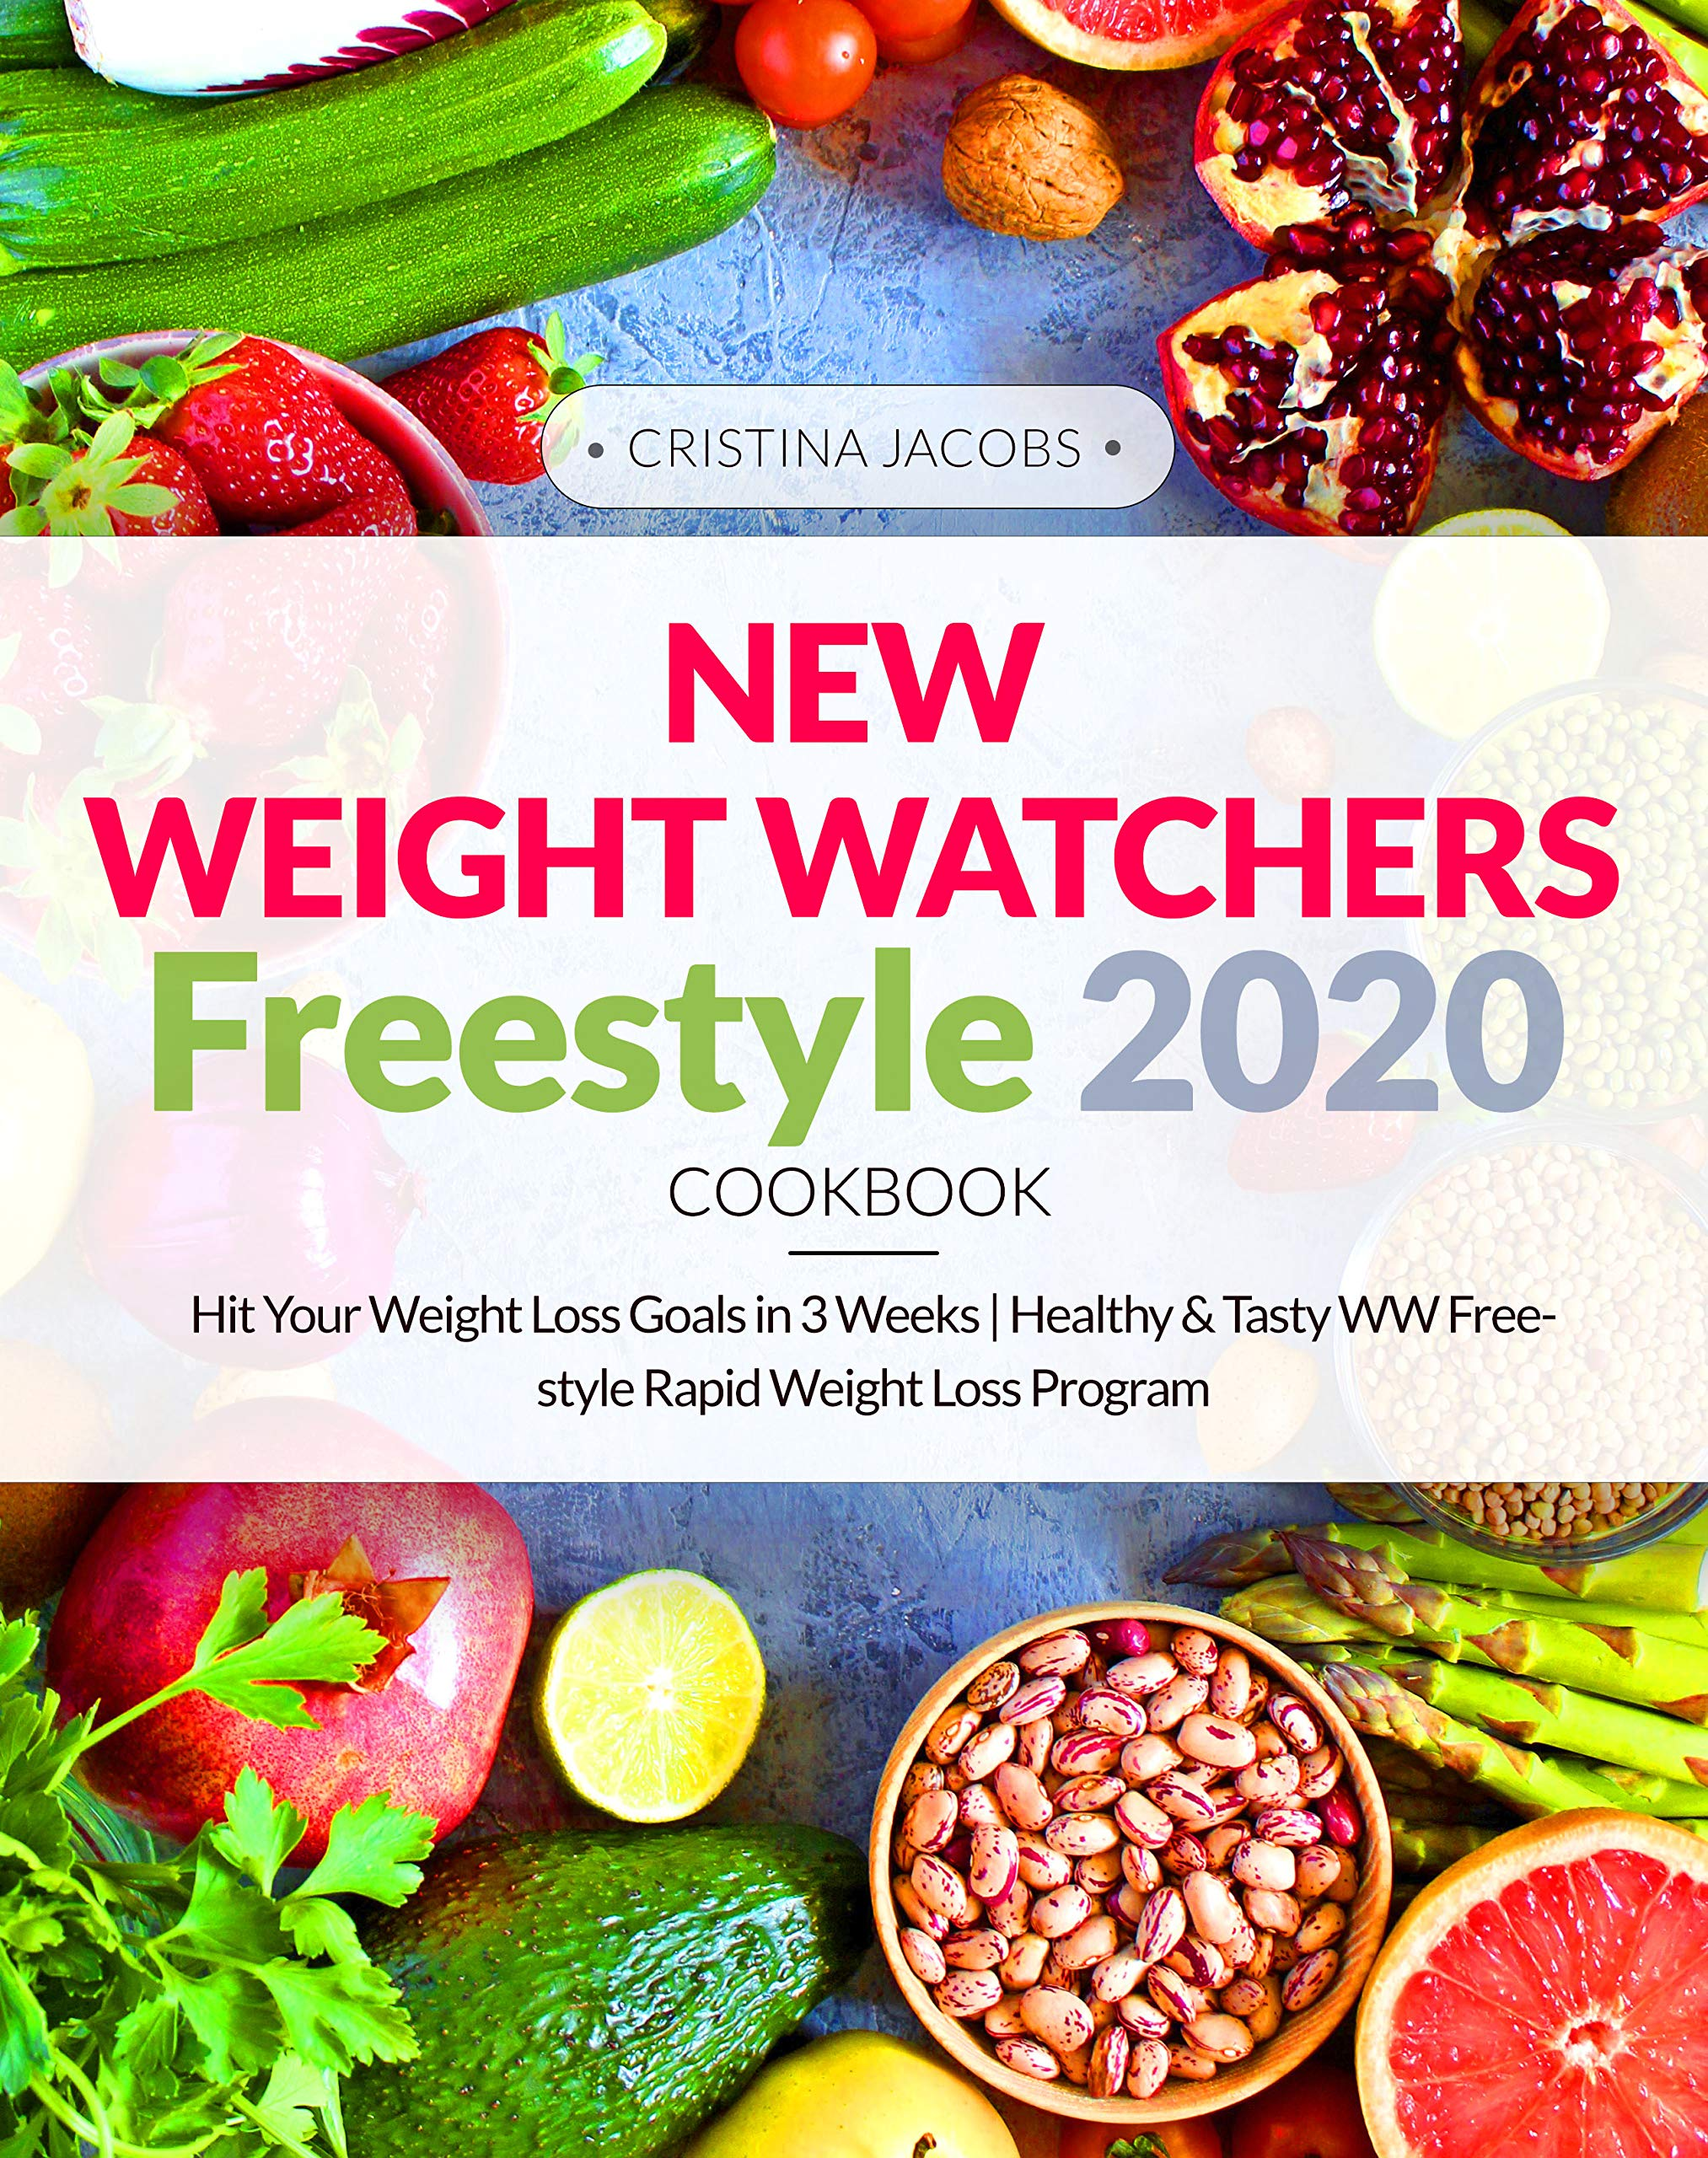 New Weight Watchers Freestyle Cookbook 2020  Hit Your Weight Loss Goals In 3 Weeks   Healthy And Tasty WW Freestyle Rapid Weight Loss Program  English Edition